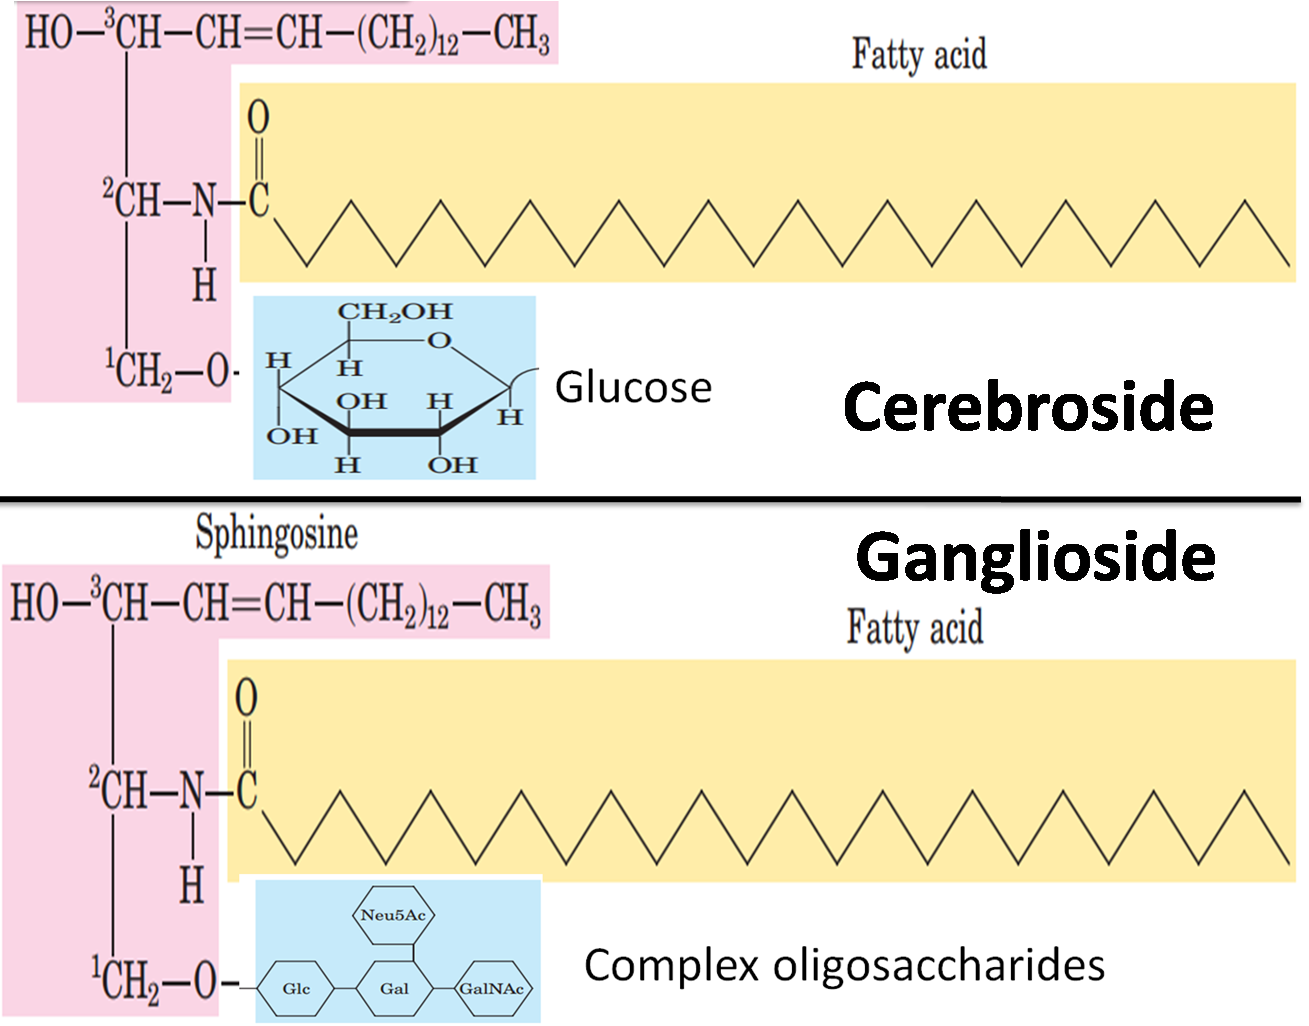 Difference between Cerebroside and Ganglioside